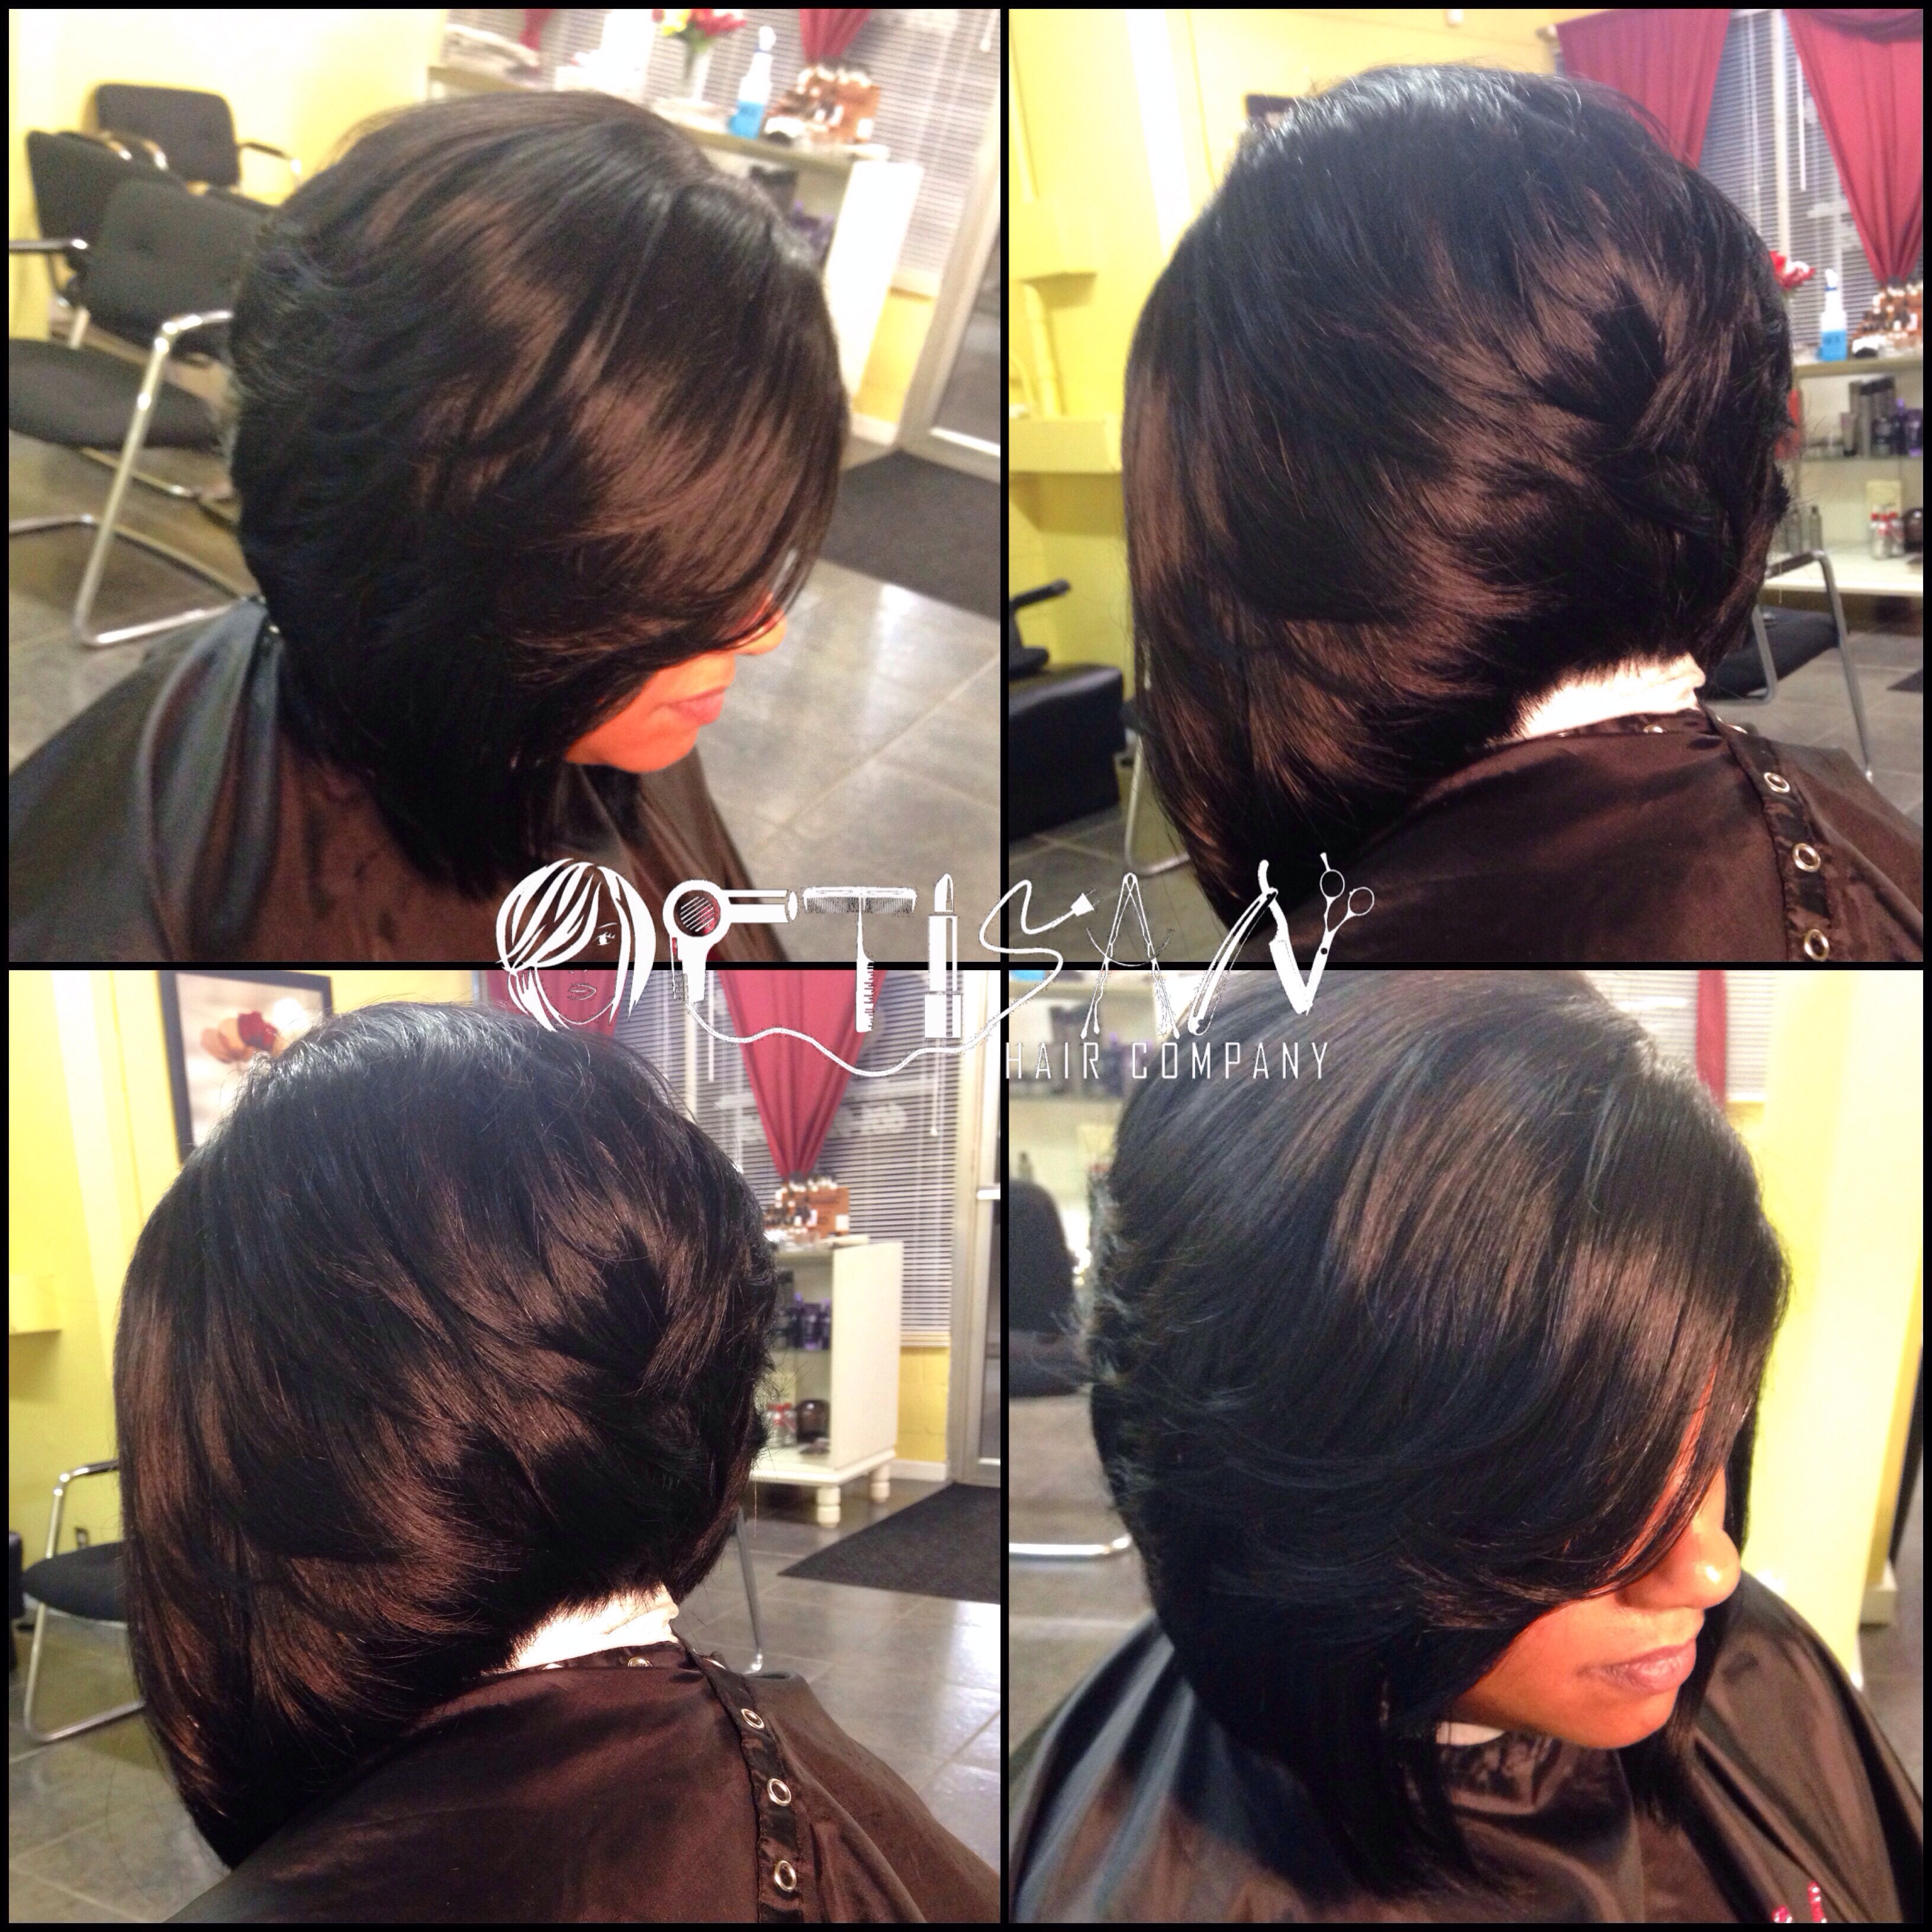 Bob Hairstyles Glue In Summer B On Twitter Quotnew Cut Whatchaaaaa